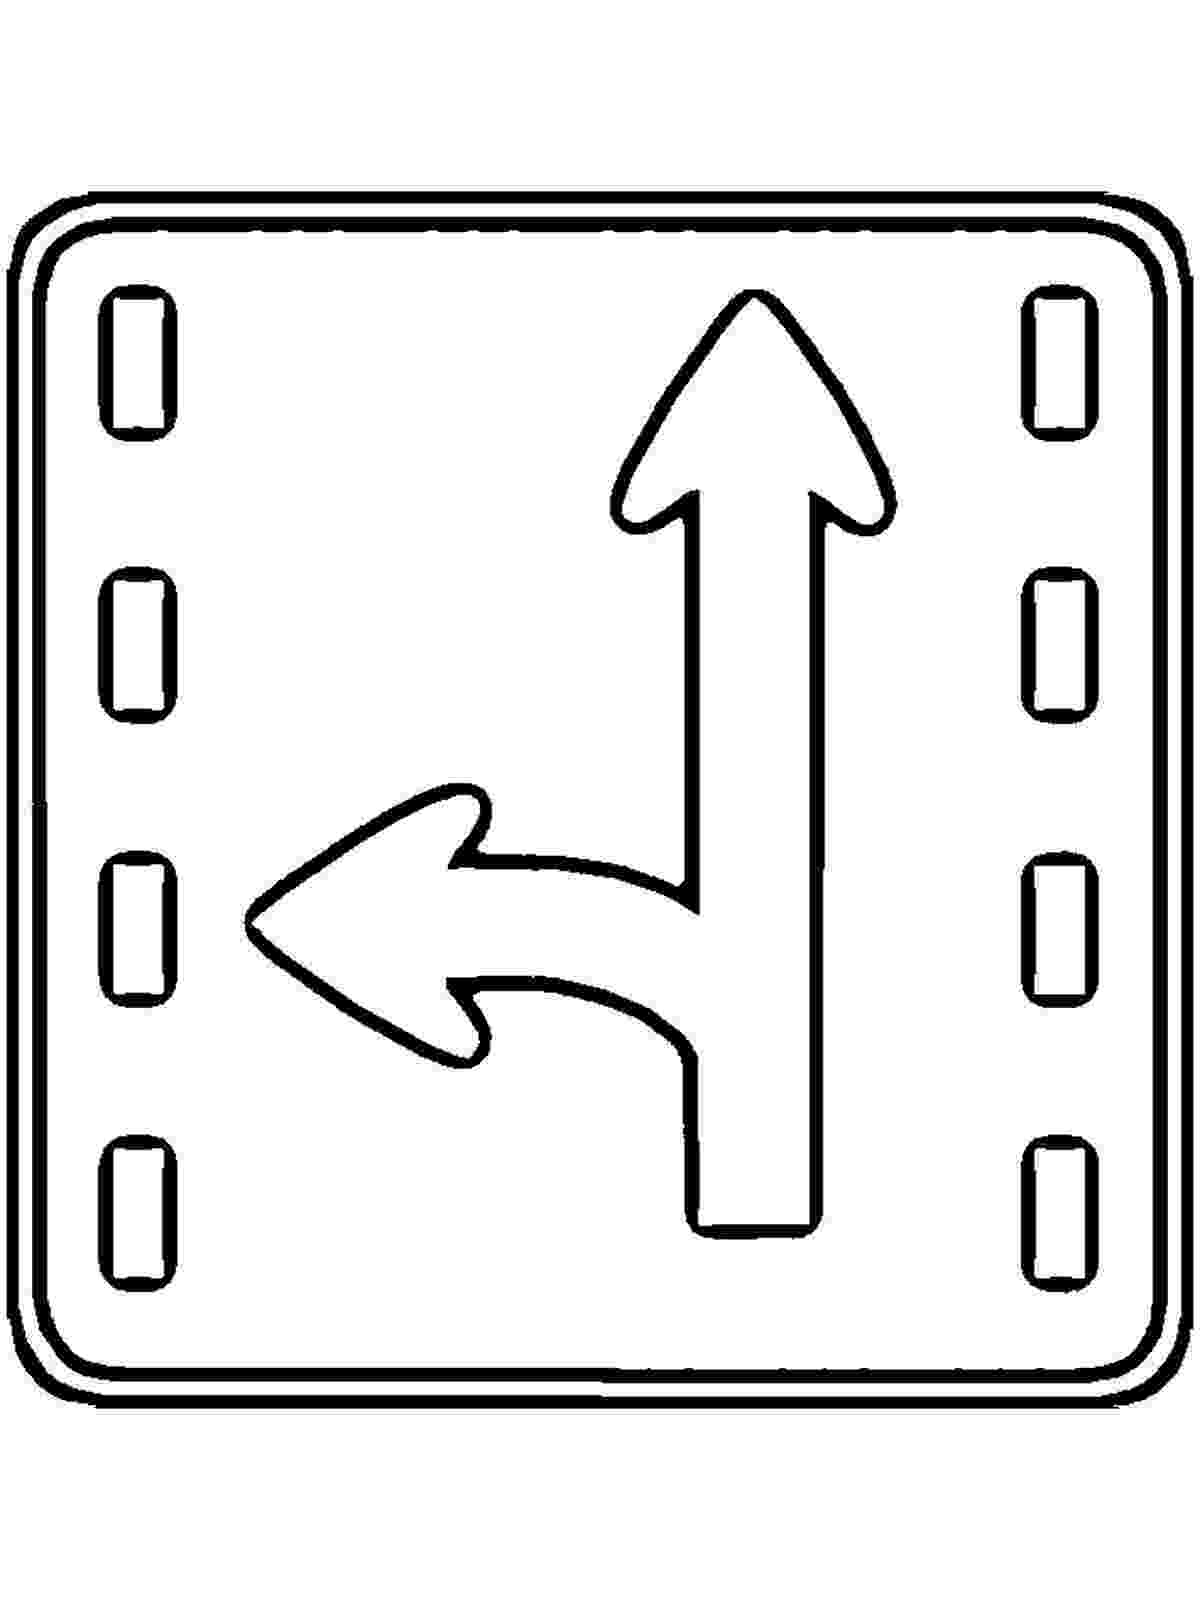 printable traffic signs coloring pages traffic sign coloring pages getcoloringpagescom coloring printable pages signs traffic